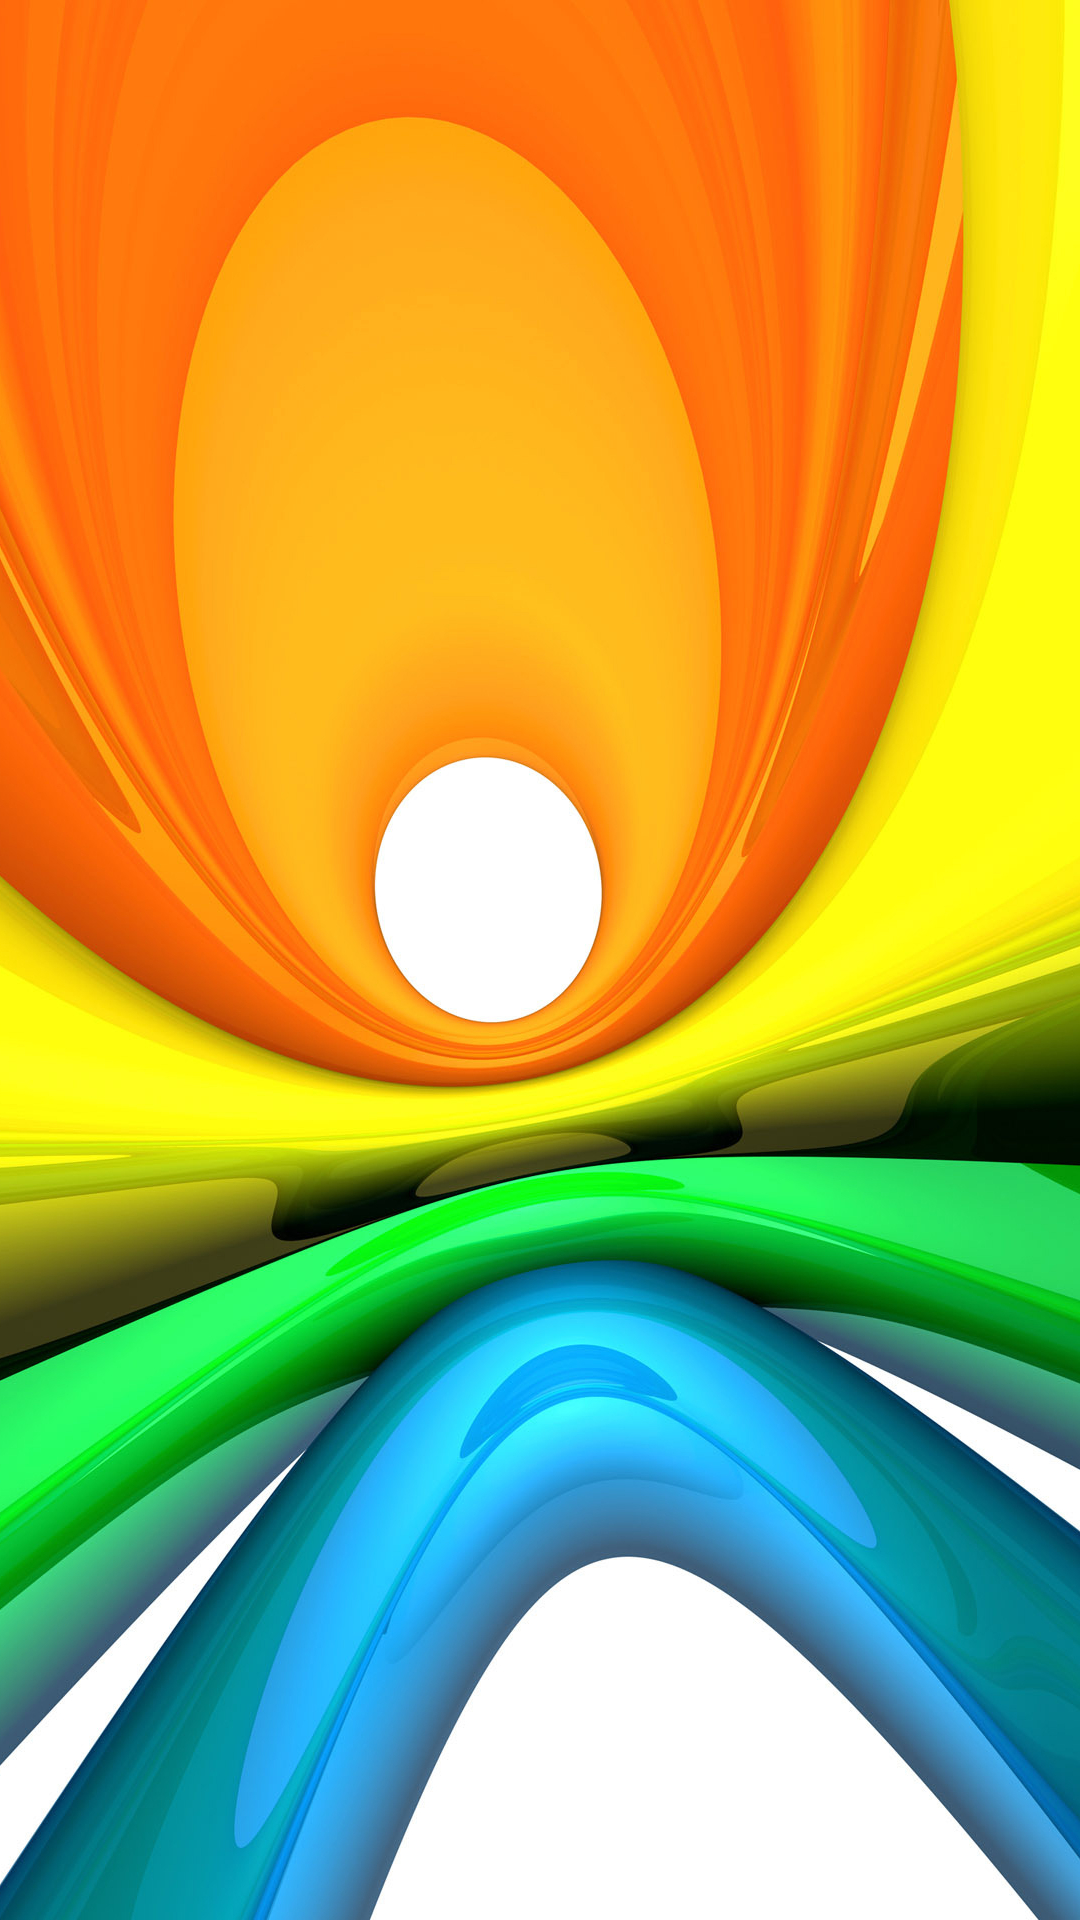 Galaxy S4 Wallpaper With Abstract Colorful Design 1080x1920